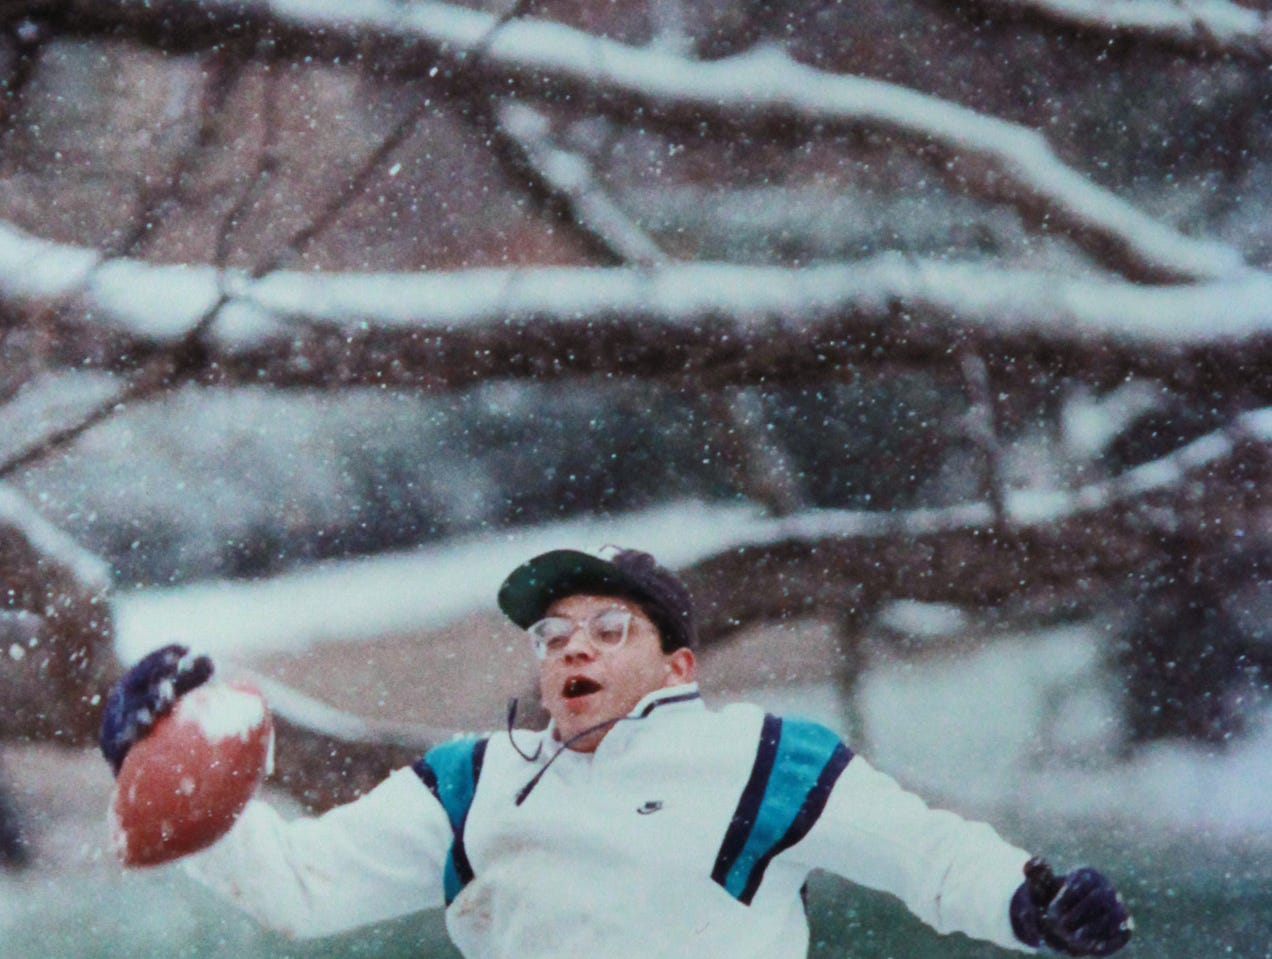 Pinakin Desai, a sophomore at Clemson University, catches a football thrown by one of his classmates Feburary 23, 1993. The snow was a break from his engineering classes.